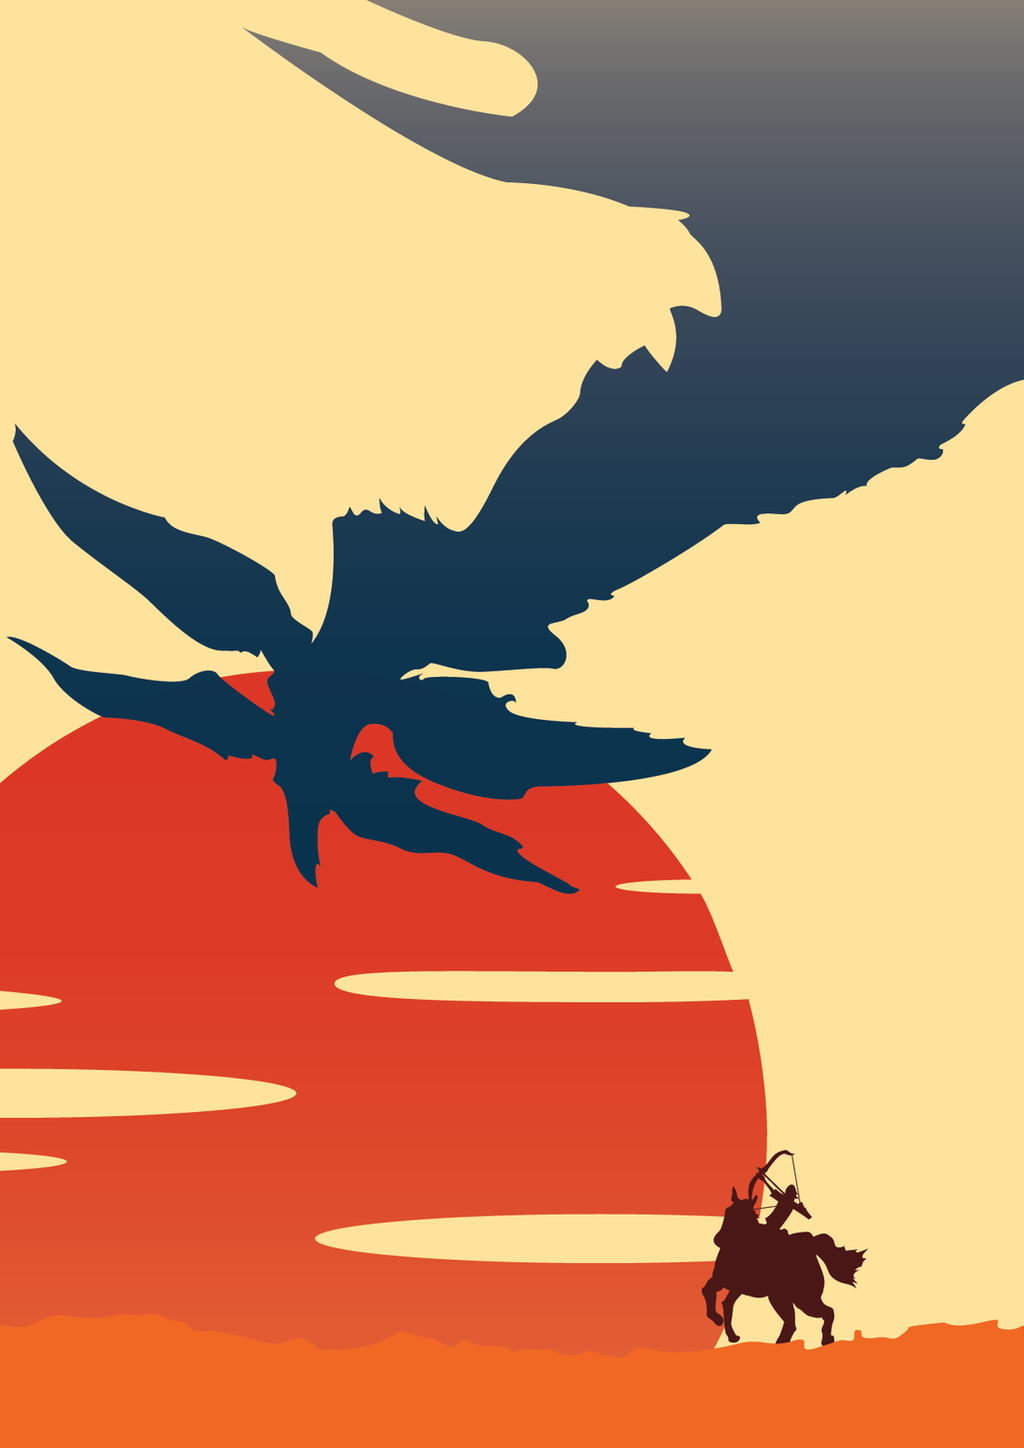 Samurai champloo iphone wallpaper 80701 trendnet - Shadow of the colossus iphone wallpaper ...